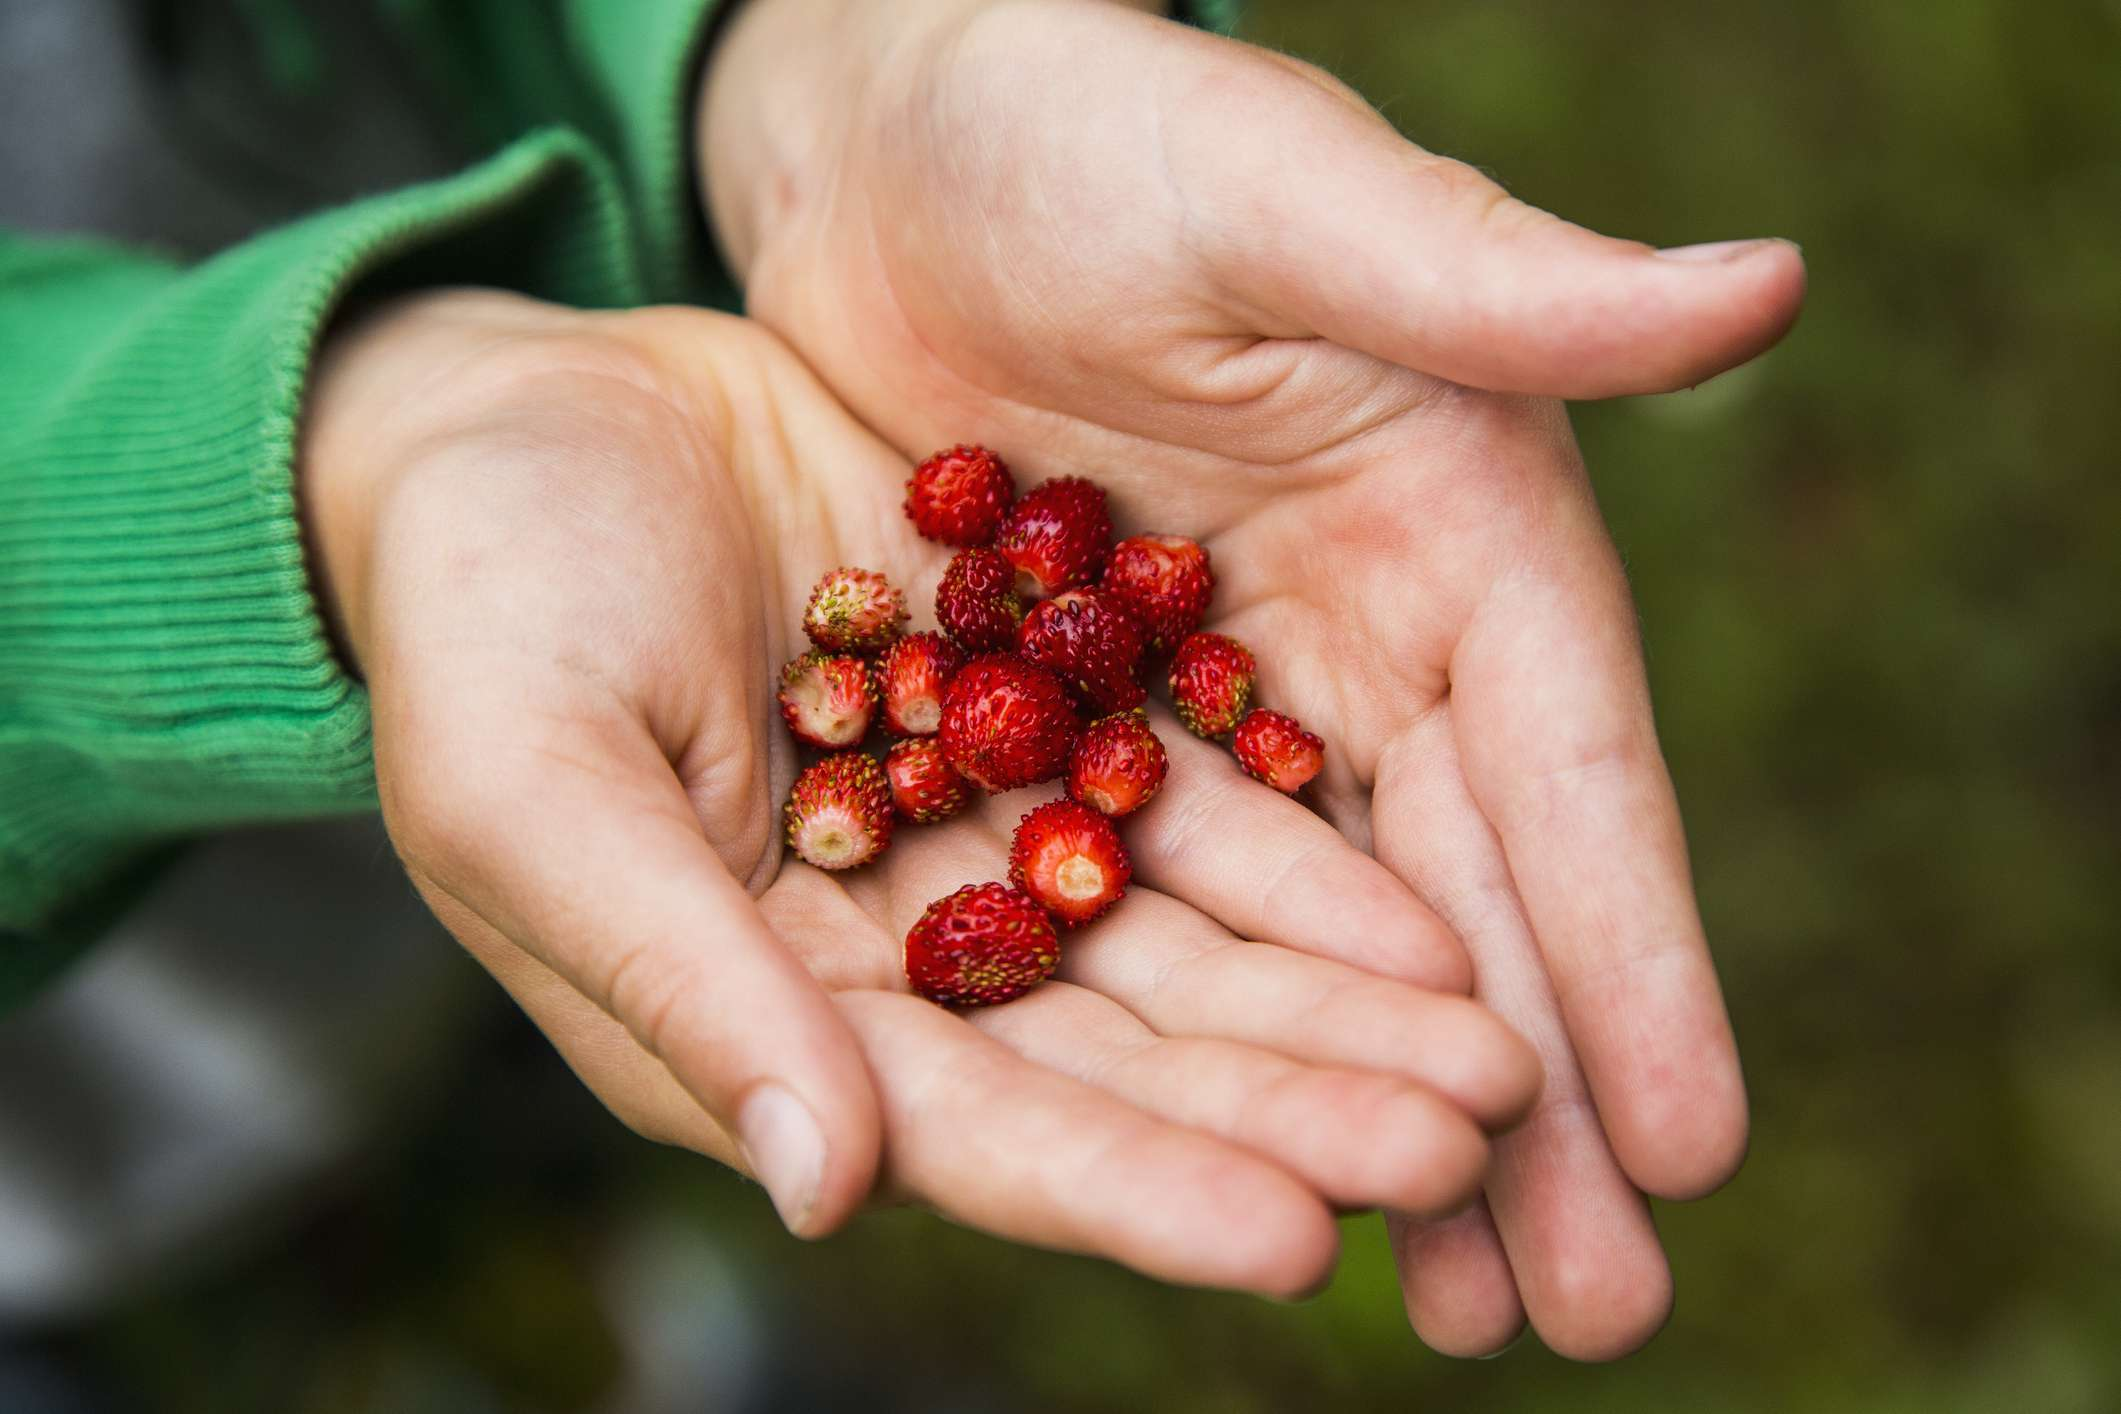 Cropped hand of person holding fresh wild strawberries